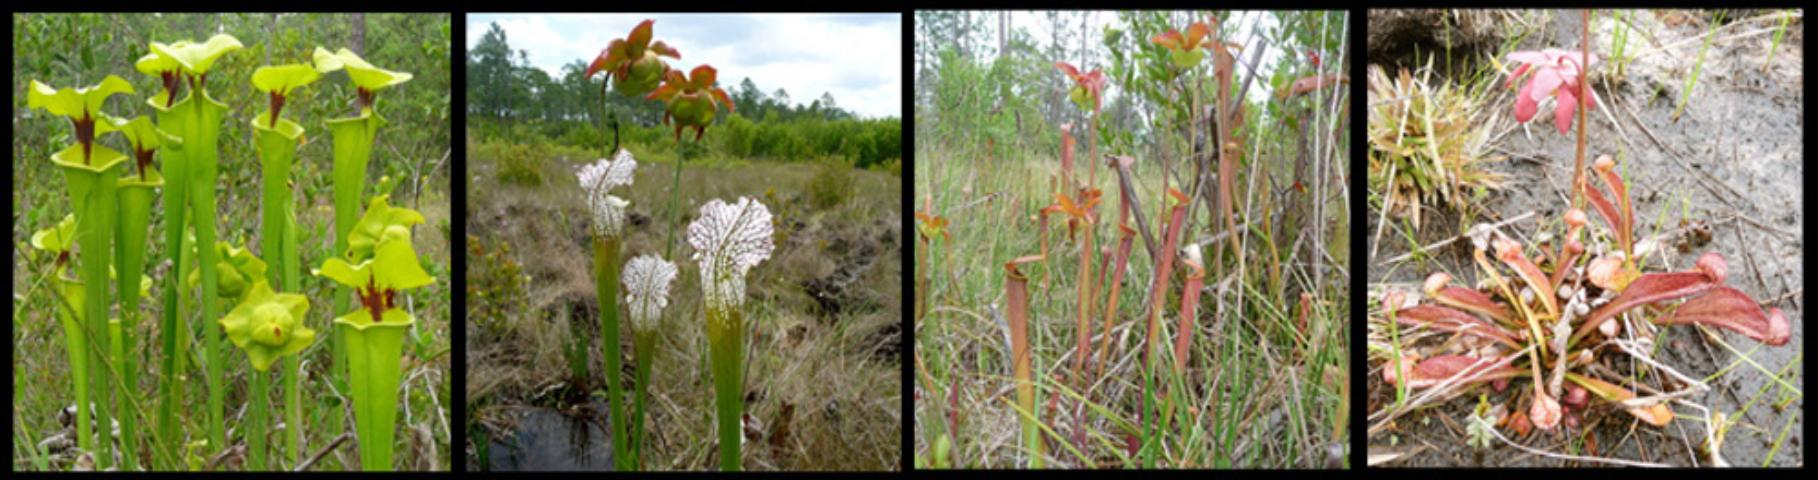 Figure 3.Pitcherplant species from left to right, yellow trumpet, white-top pitcherplant, sweet pitcherplant, and parrot pitcherplant.